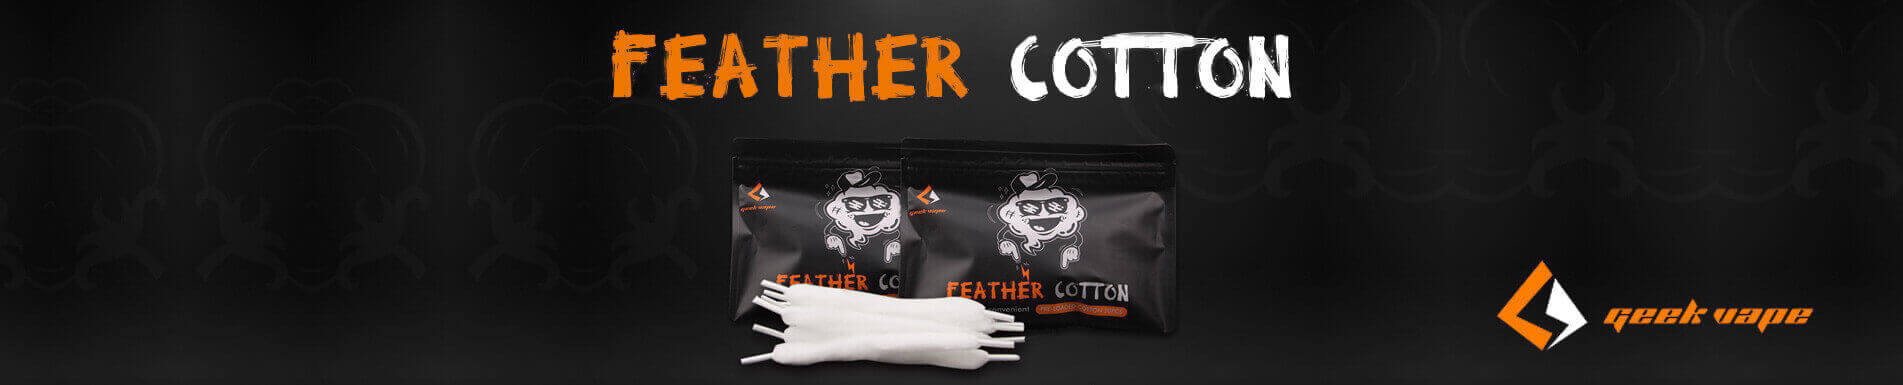 Coton Feather Cotton par GeekVape